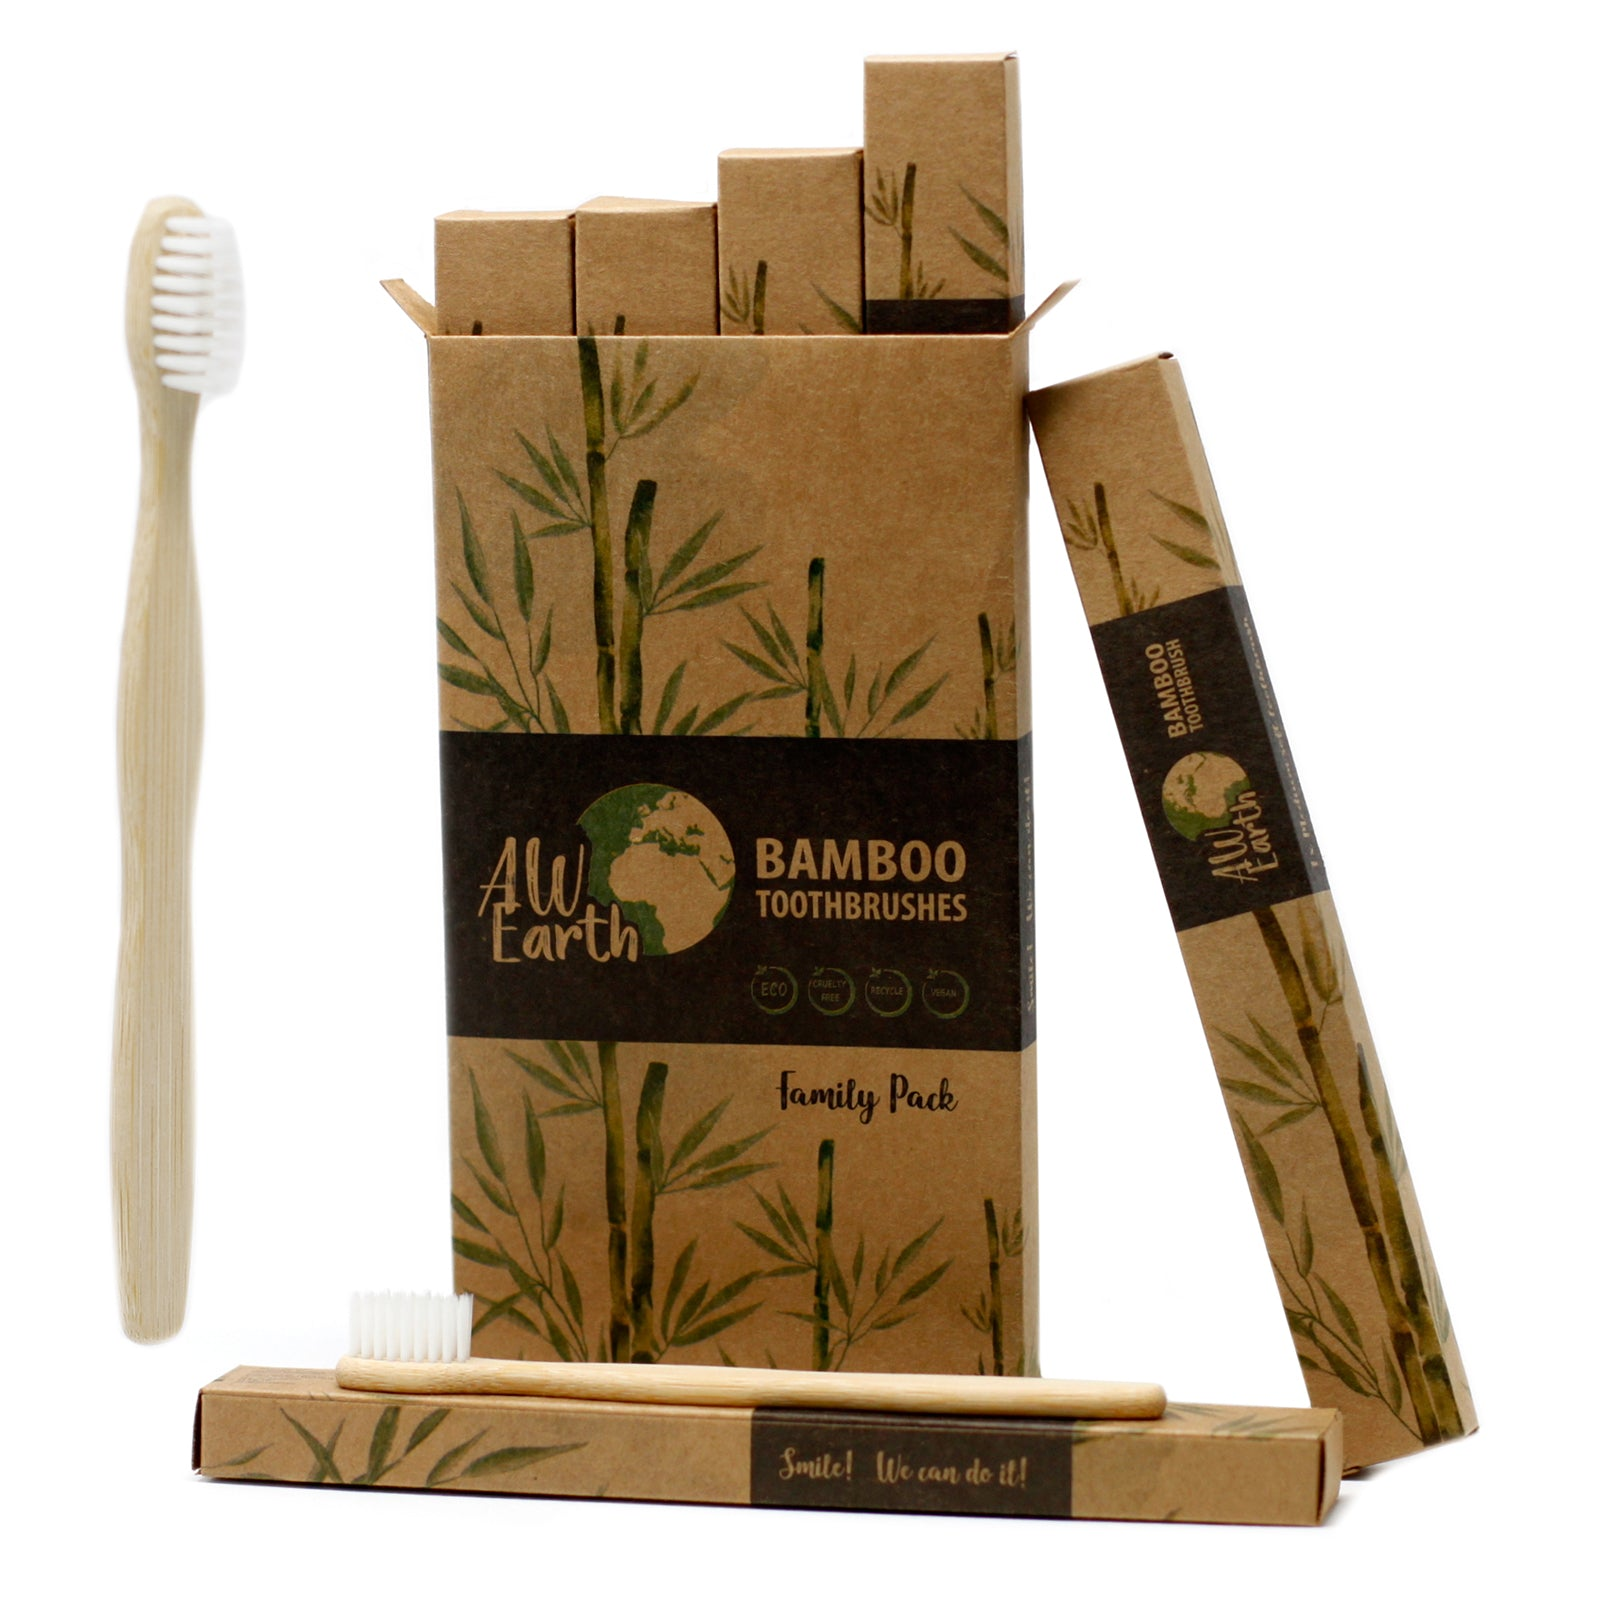 Bamboo Toothbrush - White - Family Pack of 4 - Med Soft, Oral Care by Low Cost Gifts